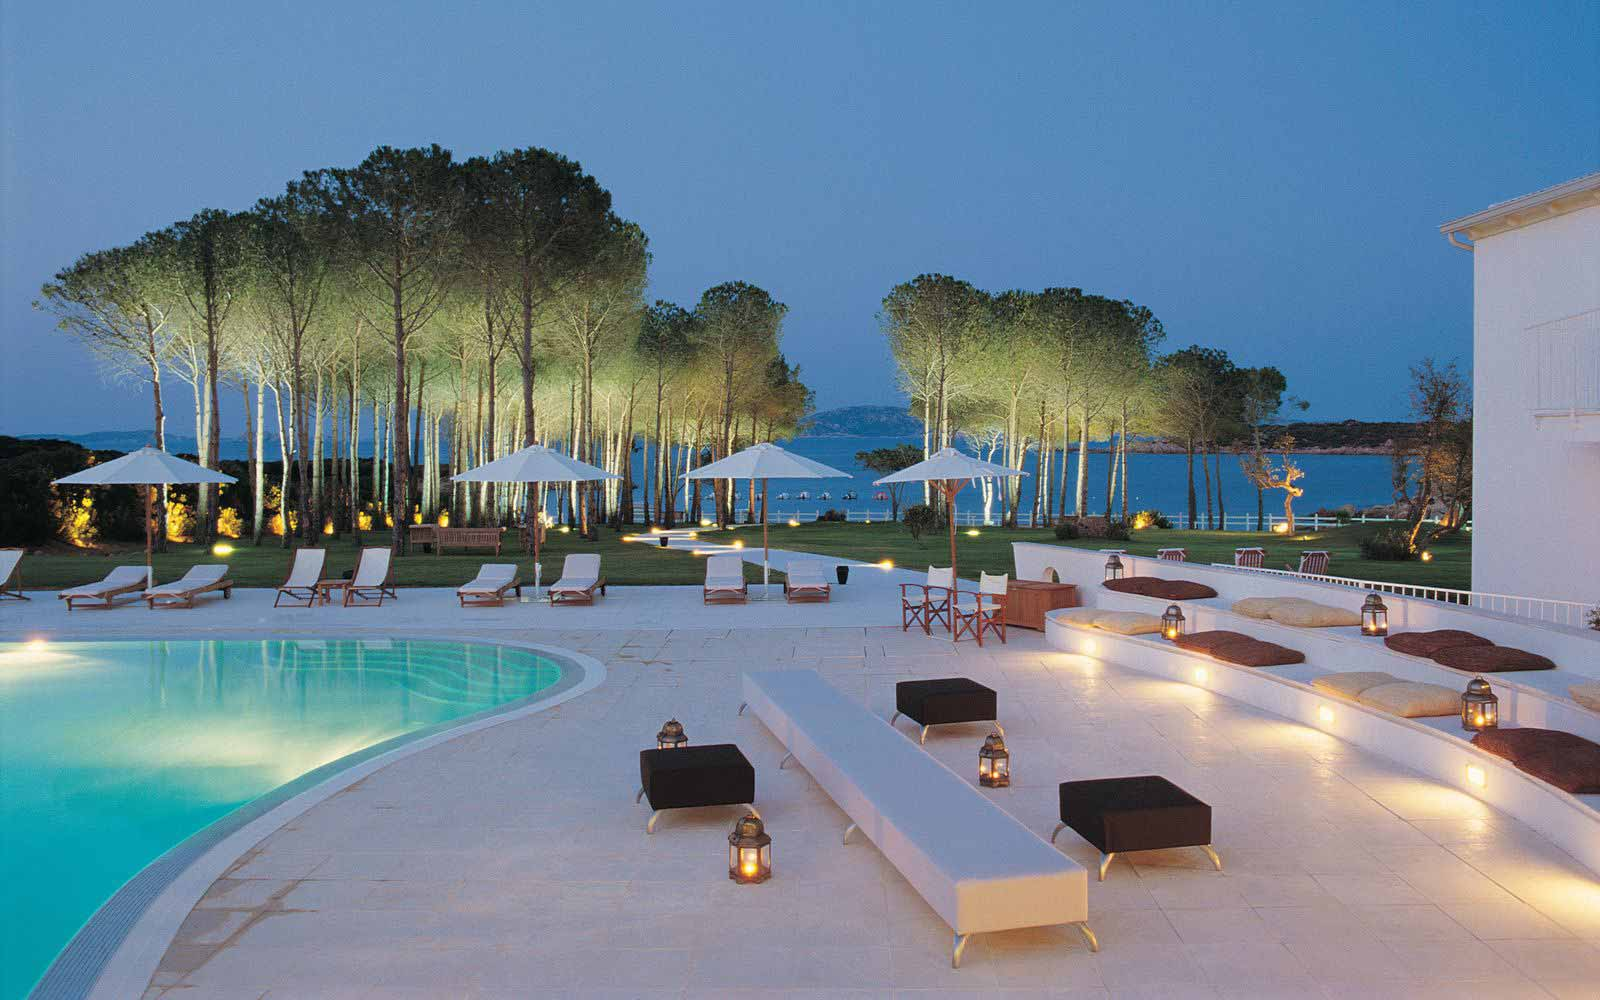 Swimming pool by night at La Coluccia Hotel & Beach Club